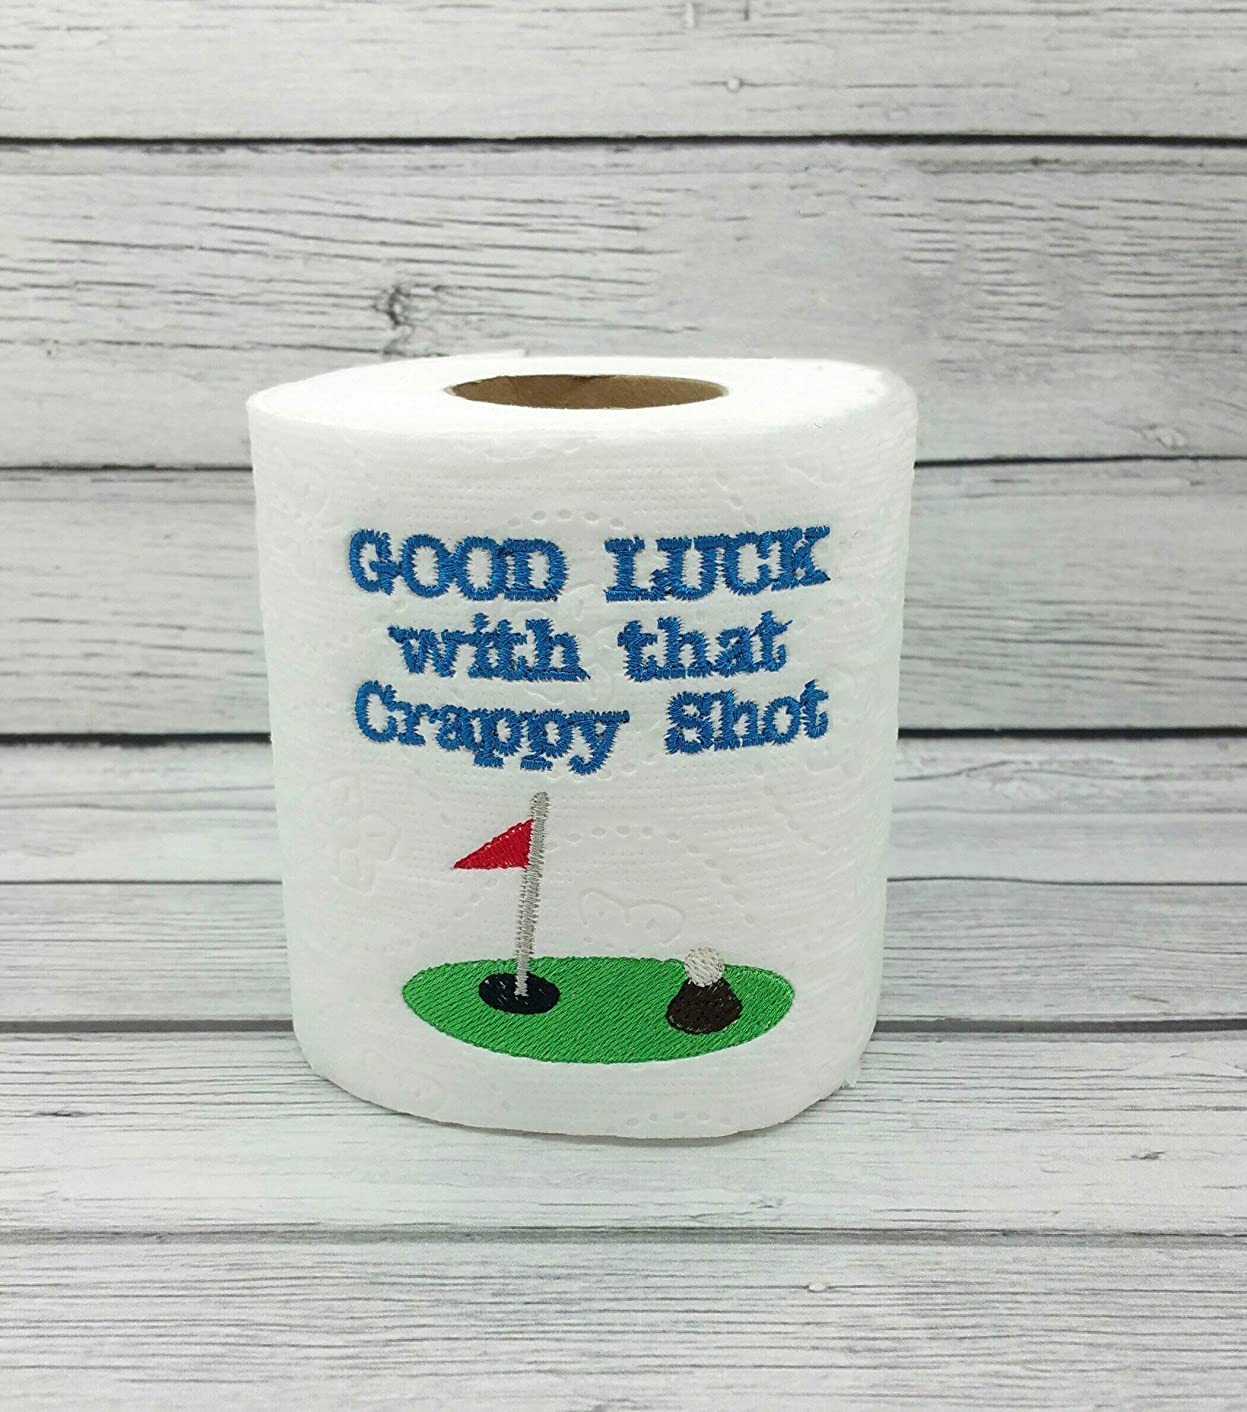 Golf Lovers Novelty Embroidered Toilet Paper, Funny Joke Prank Gag Gift